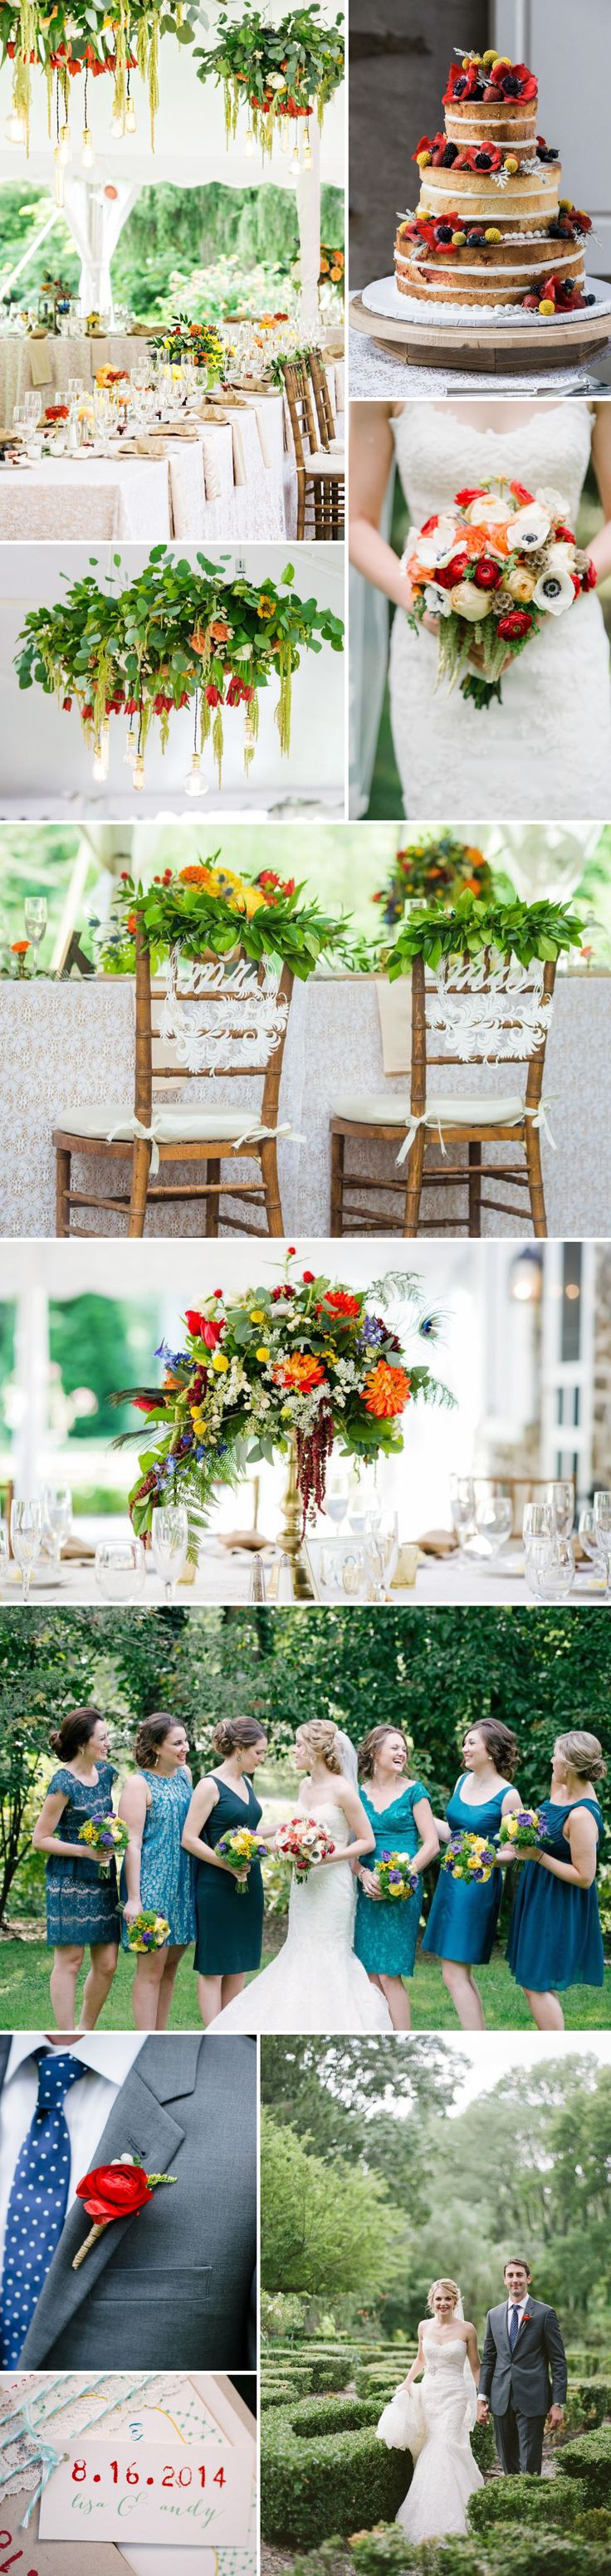 BL Real Wedding: Lisa + Andy - Gorgeous Hanging Florals + Naked Wedding Cake - Click on link for more loveliness: http://www.beaconln.com/blog/